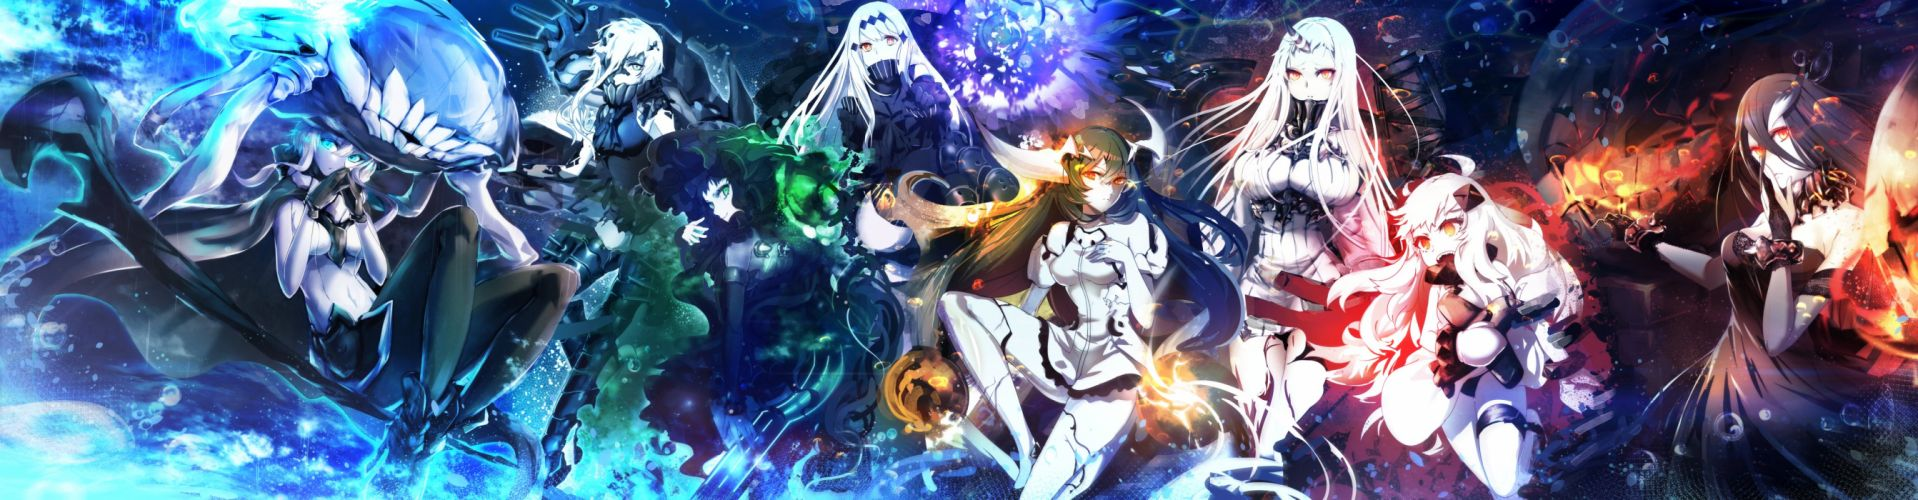 battleship water oni cibo (killy) dualscreen isolated island oni kantai collection northern ocean hime seaport hime tagme (character) wallpaper